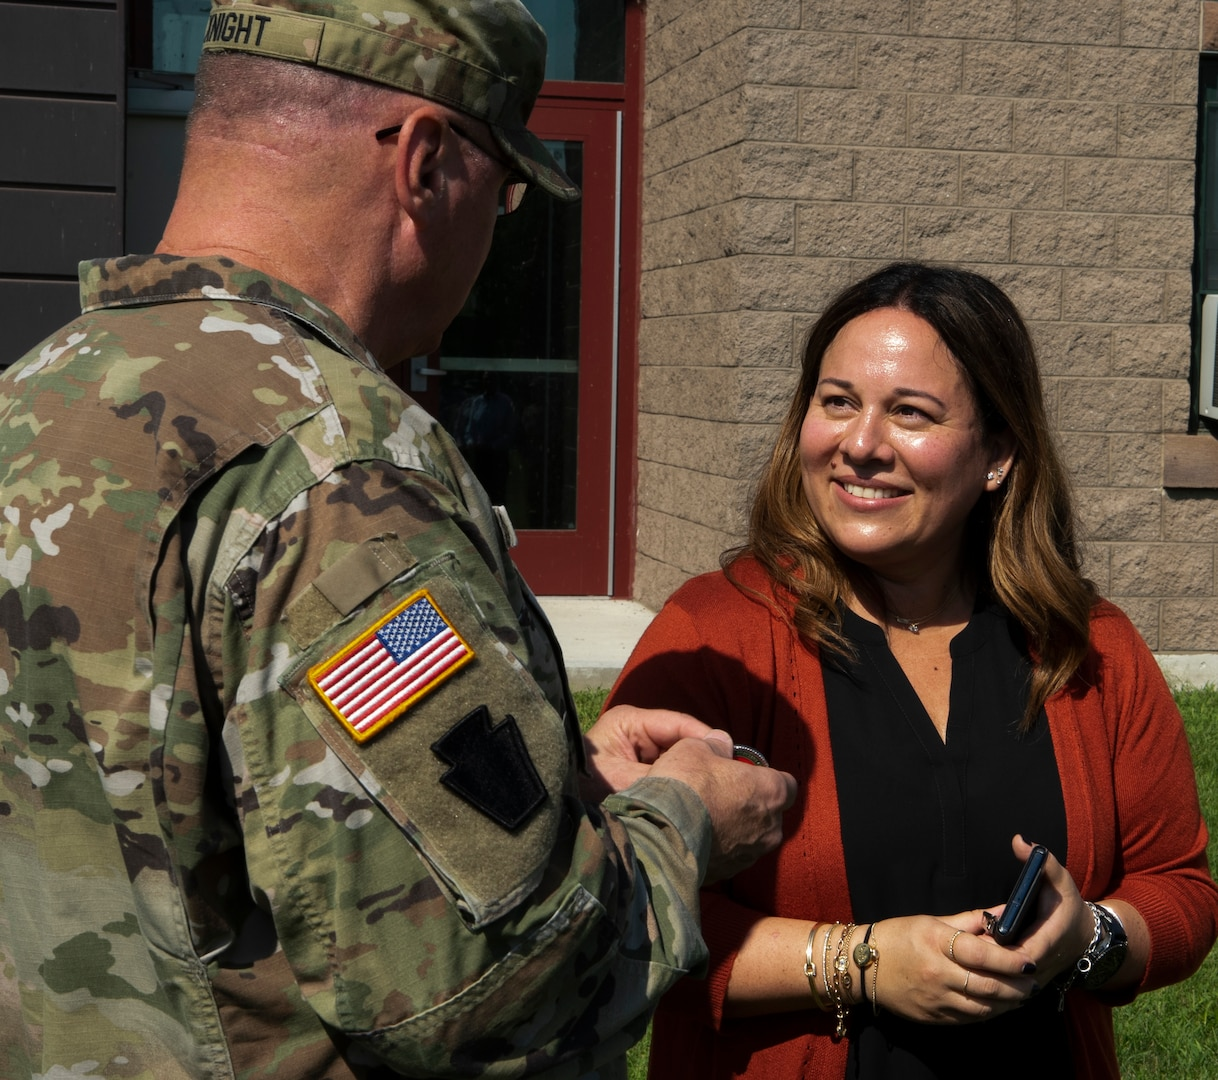 Maj. Gen. Greg Knight, Vermont's adjutant general, presents Dr. Maria Mercedes Avila with a coin during a workshop on structural competence and cultural humility at Vermont Air National Guard Base in South Burlington, Vermont, Aug. 13, 2021. Avila is a member of the Vermont Governor's Workforce Equity and Diversity Council and is working with the Vermont National Guard's Joint Diversity Executive Council to improve inclusiveness within the Guard. (U.S. Army National Guard photo by Don Branum)